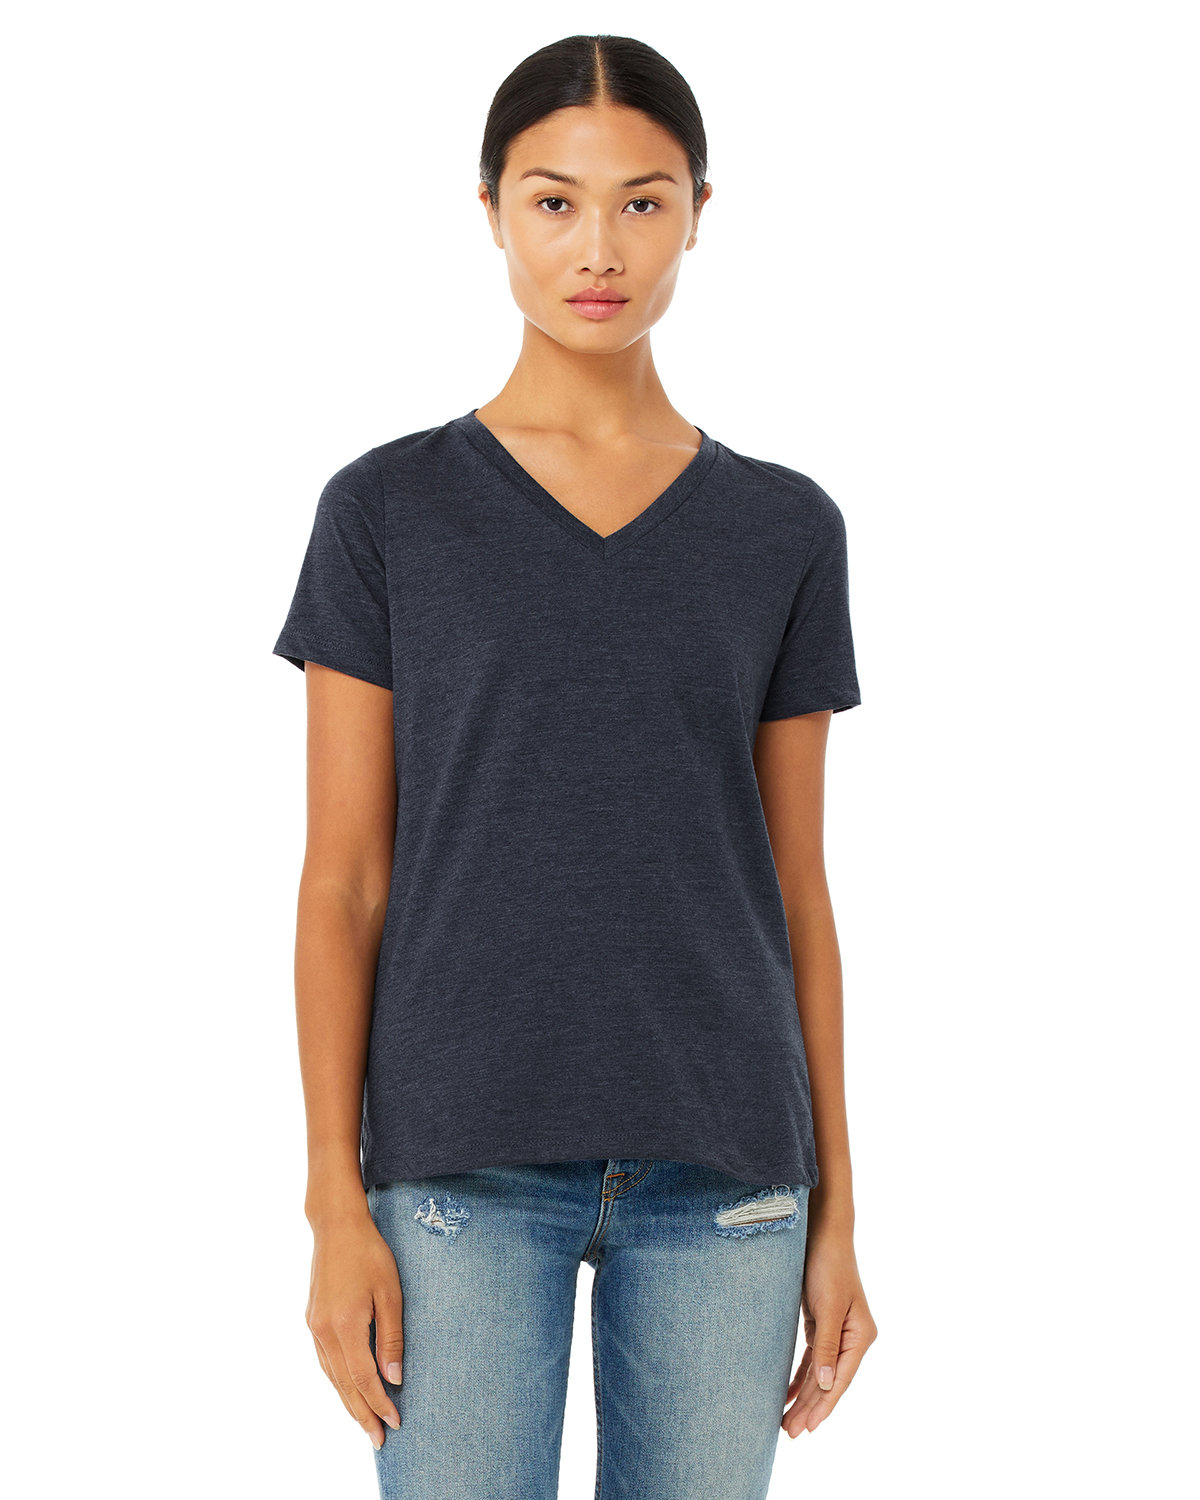 Bella + Canvas Ladies' Relaxed Jersey V-Neck T-Shirt HEATHER NAVY